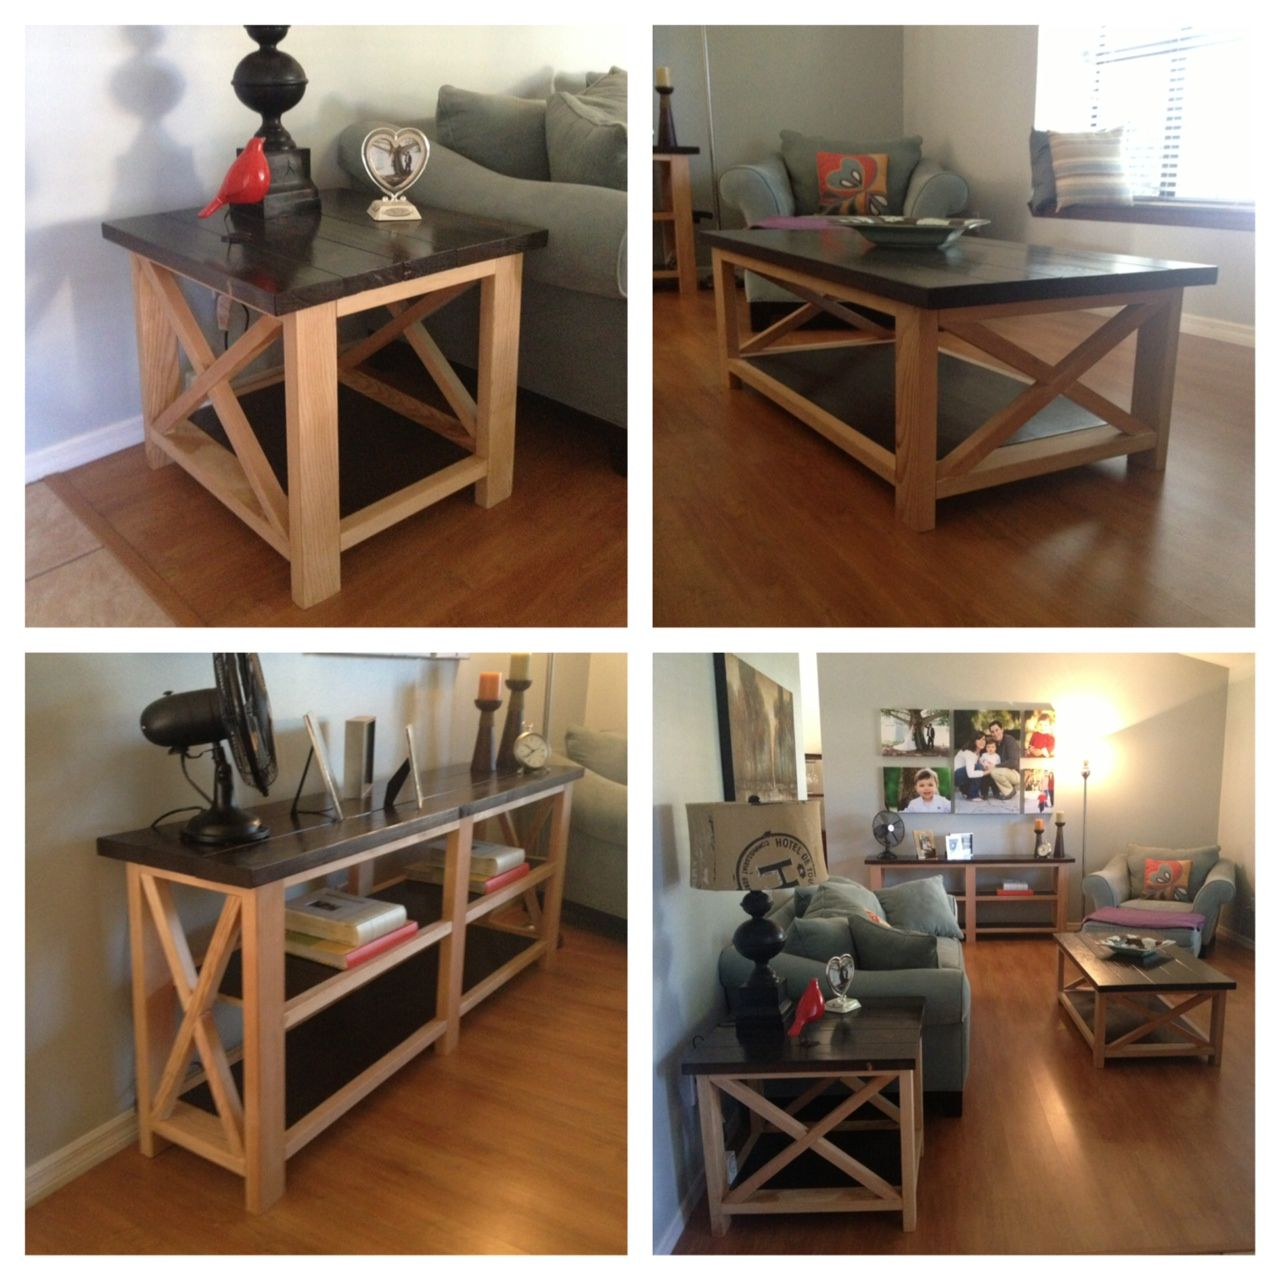 Ana White Rustic X Console Table With Top Diy Projects Inside Sizing 3264 2448 Coffee It S An Excellent First Time Furniture Undertak